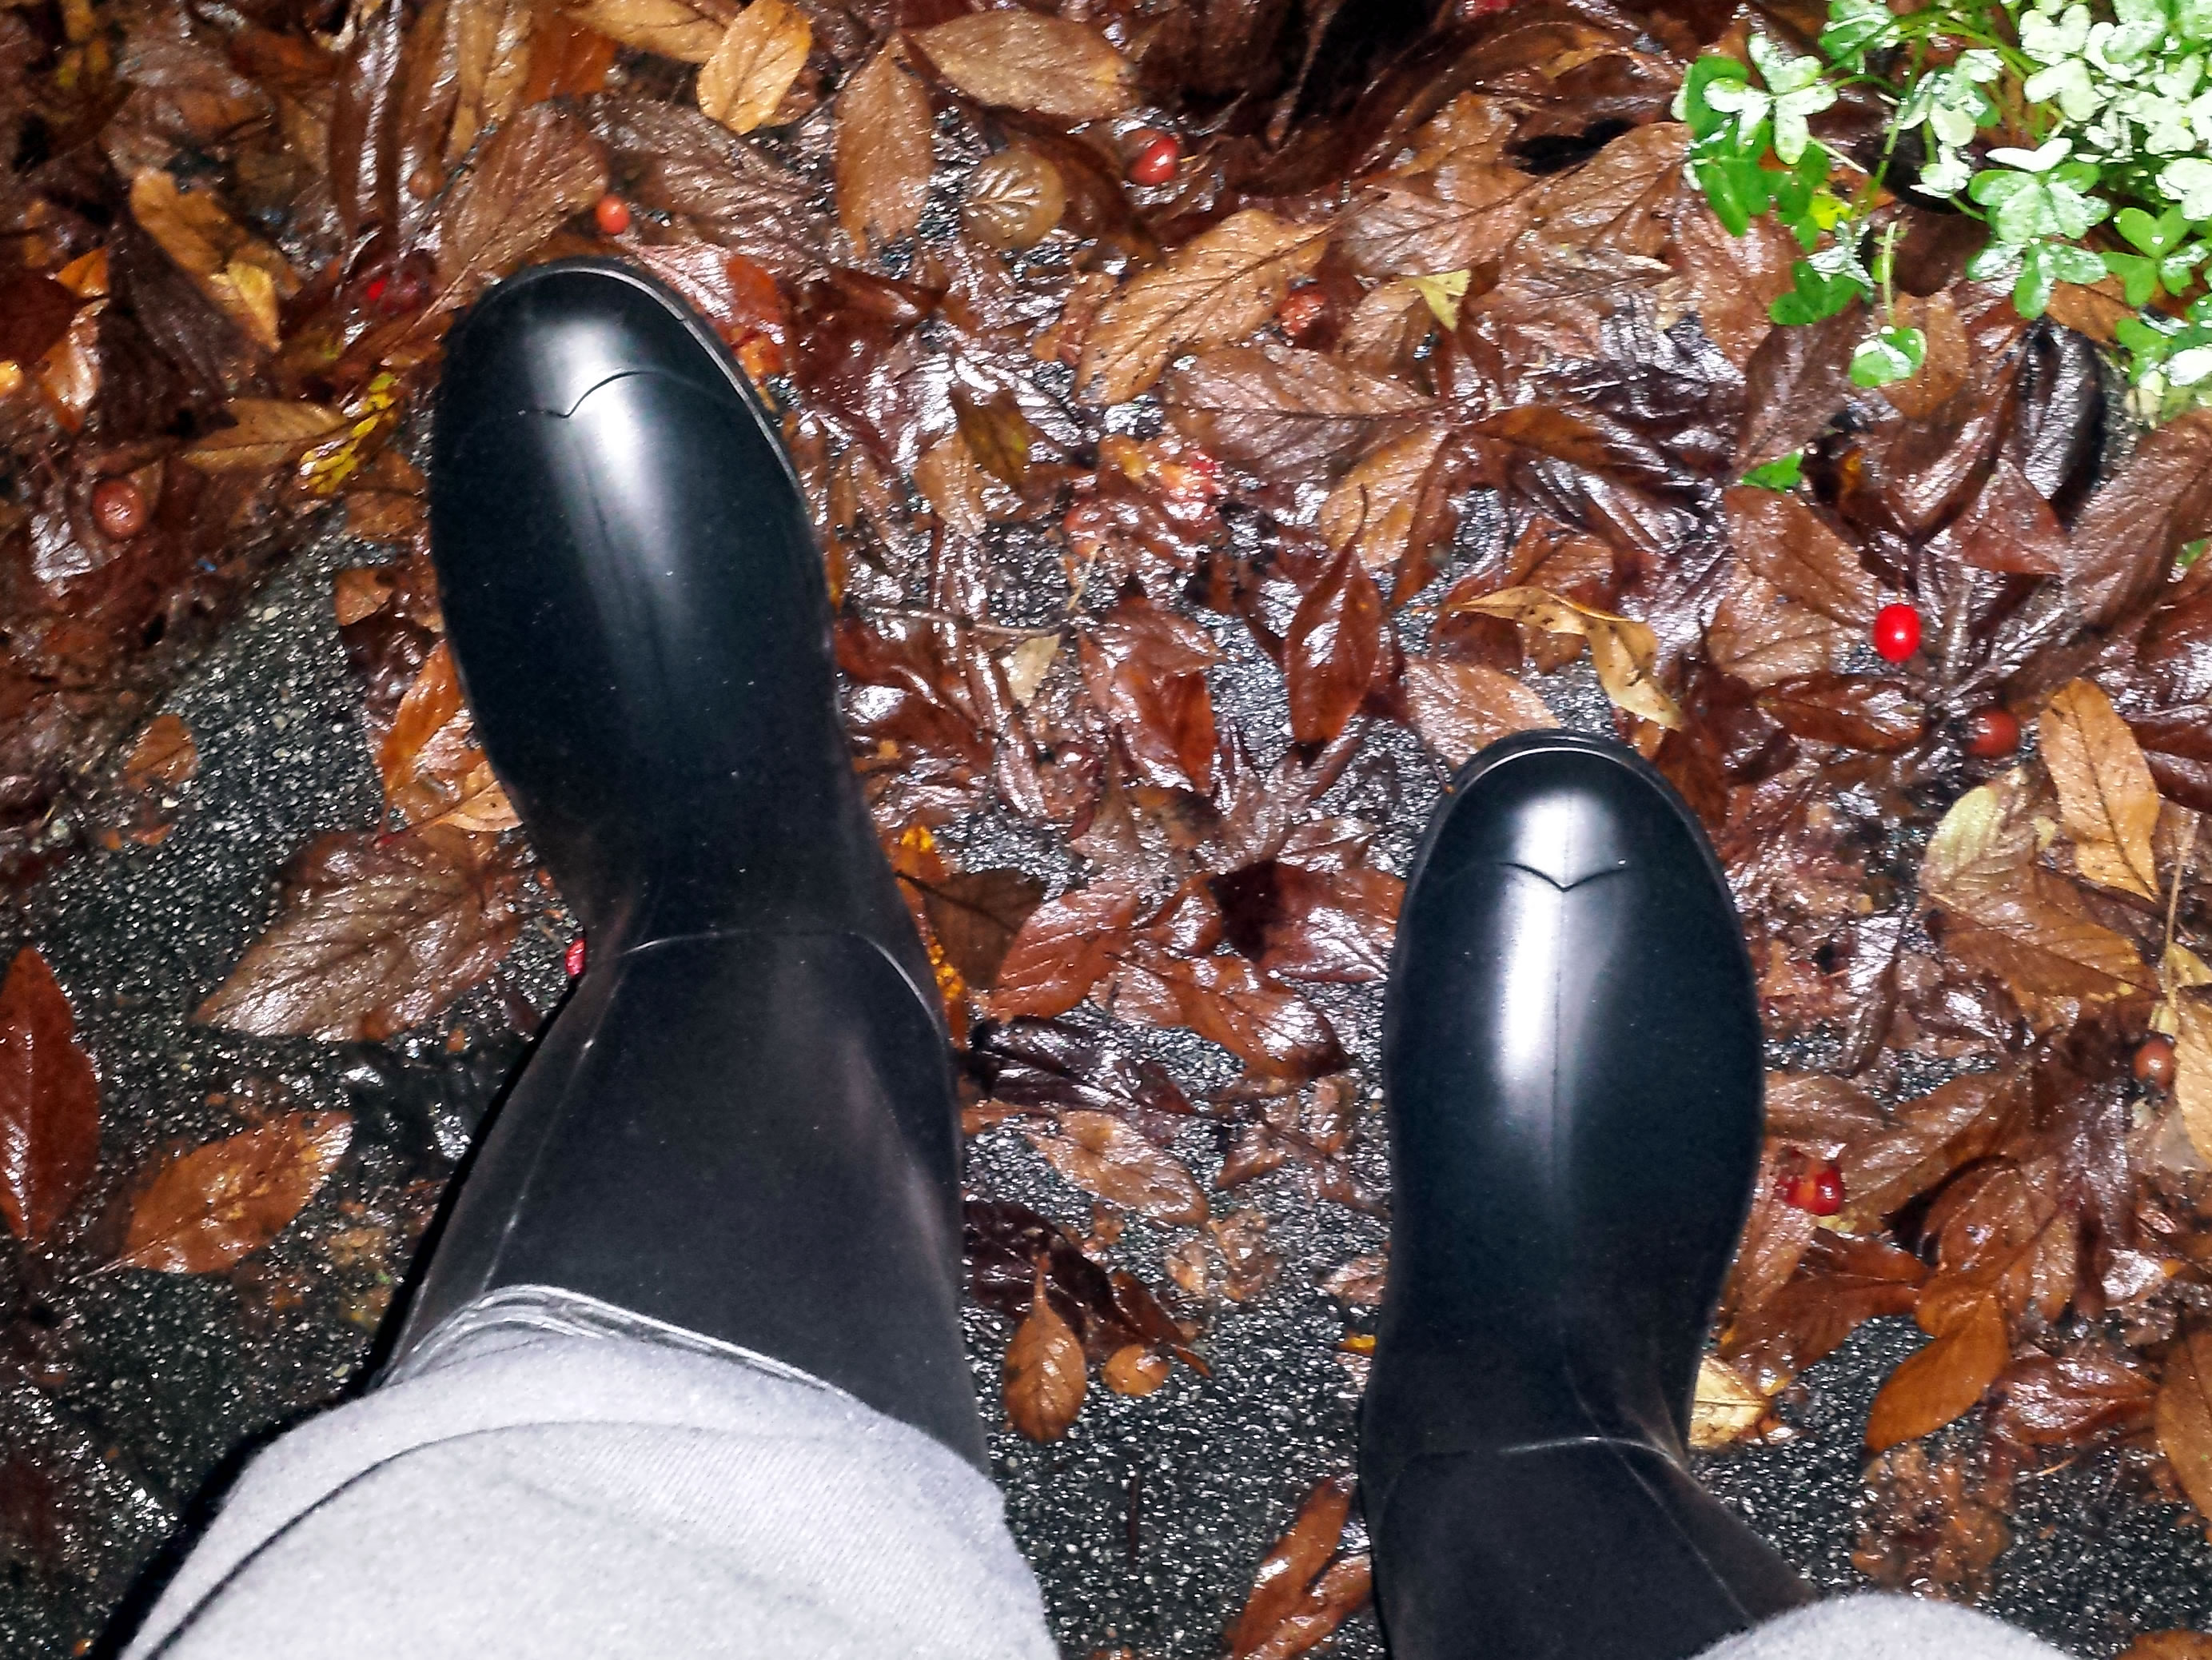 I Waited Until We Had The Biggest Rainstorm In Years To Even Think About Ing Rain Boots My Work Shoes And Socks